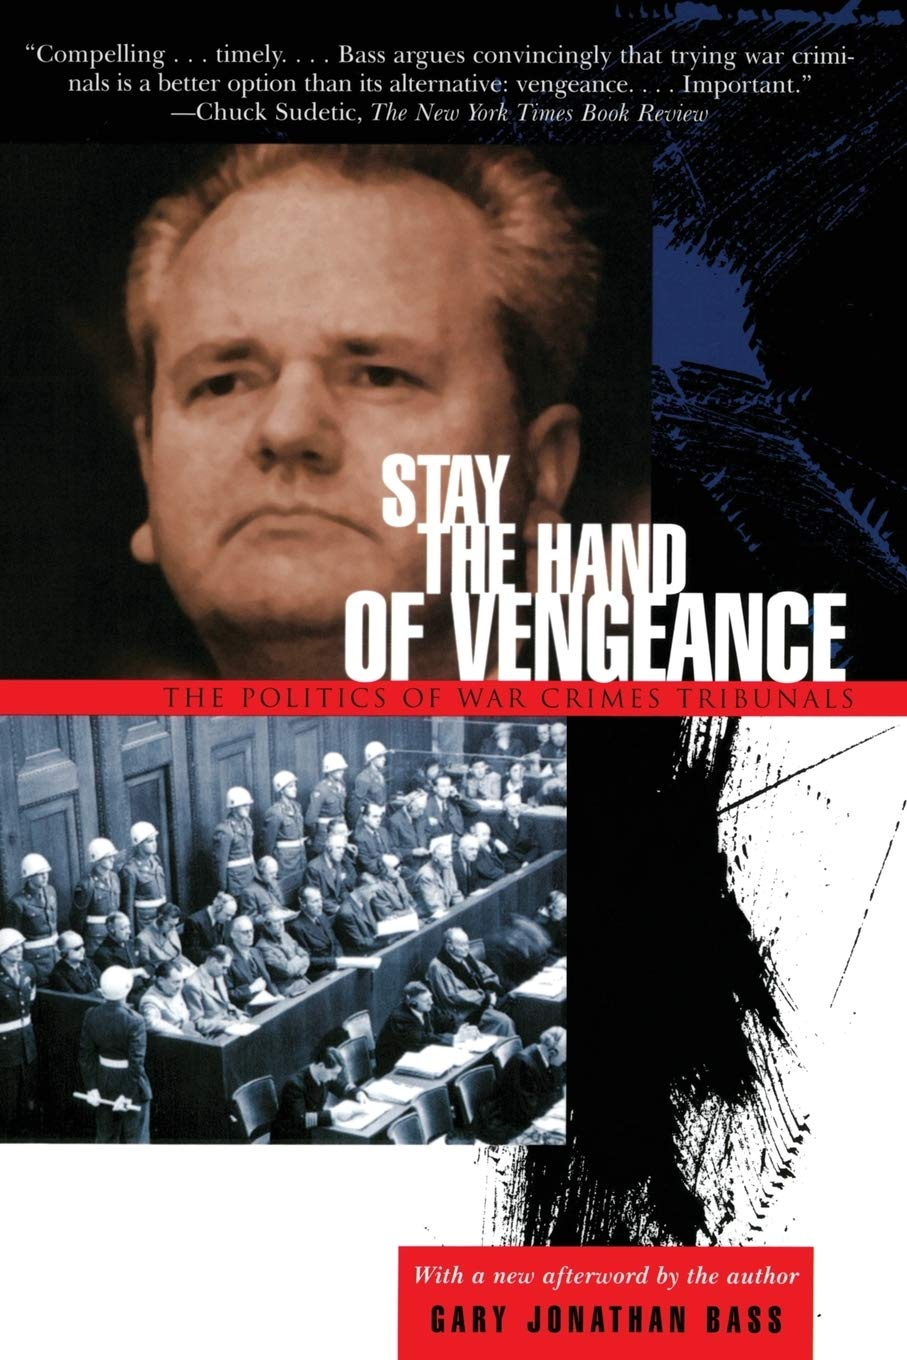 Image OfStay The Hand Of Vengeance: The Politics Of War Crimes Tribunals